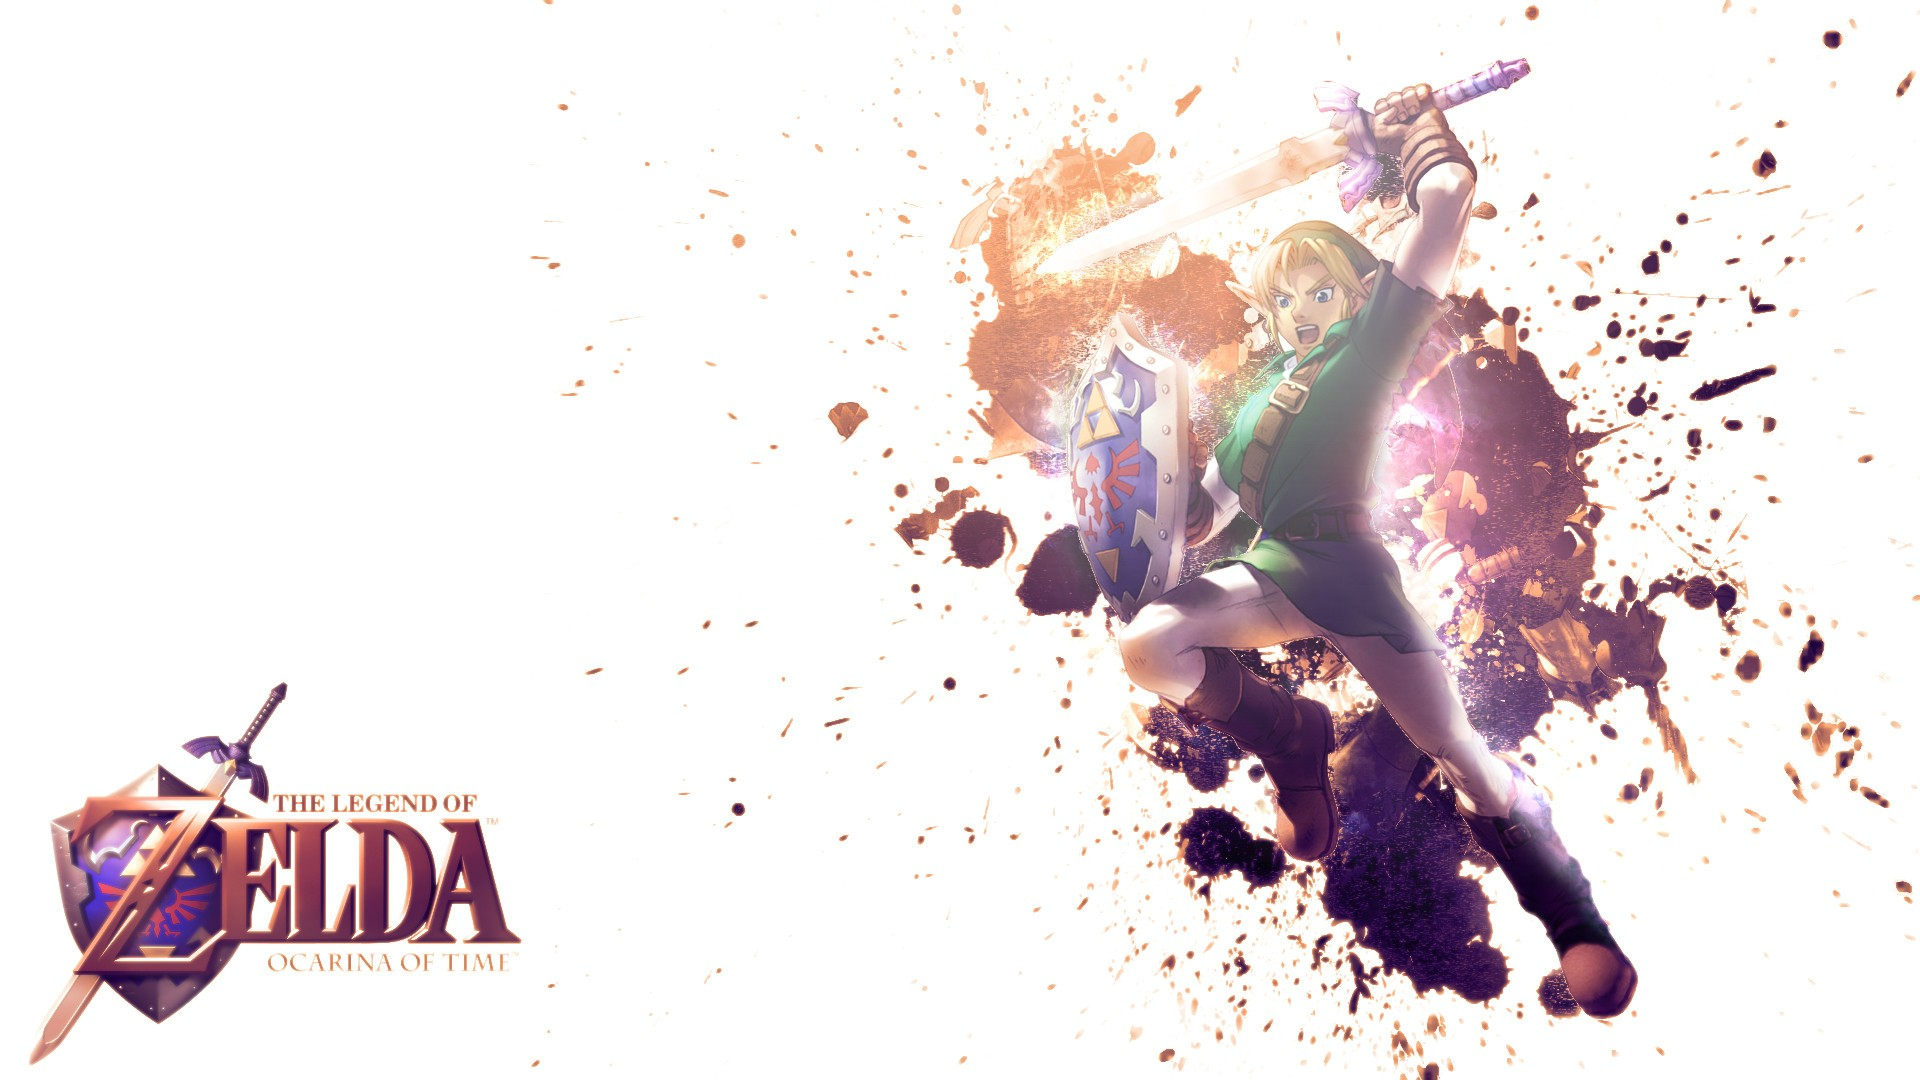 the legend of zelda: ocarina of time full hd wallpaper and